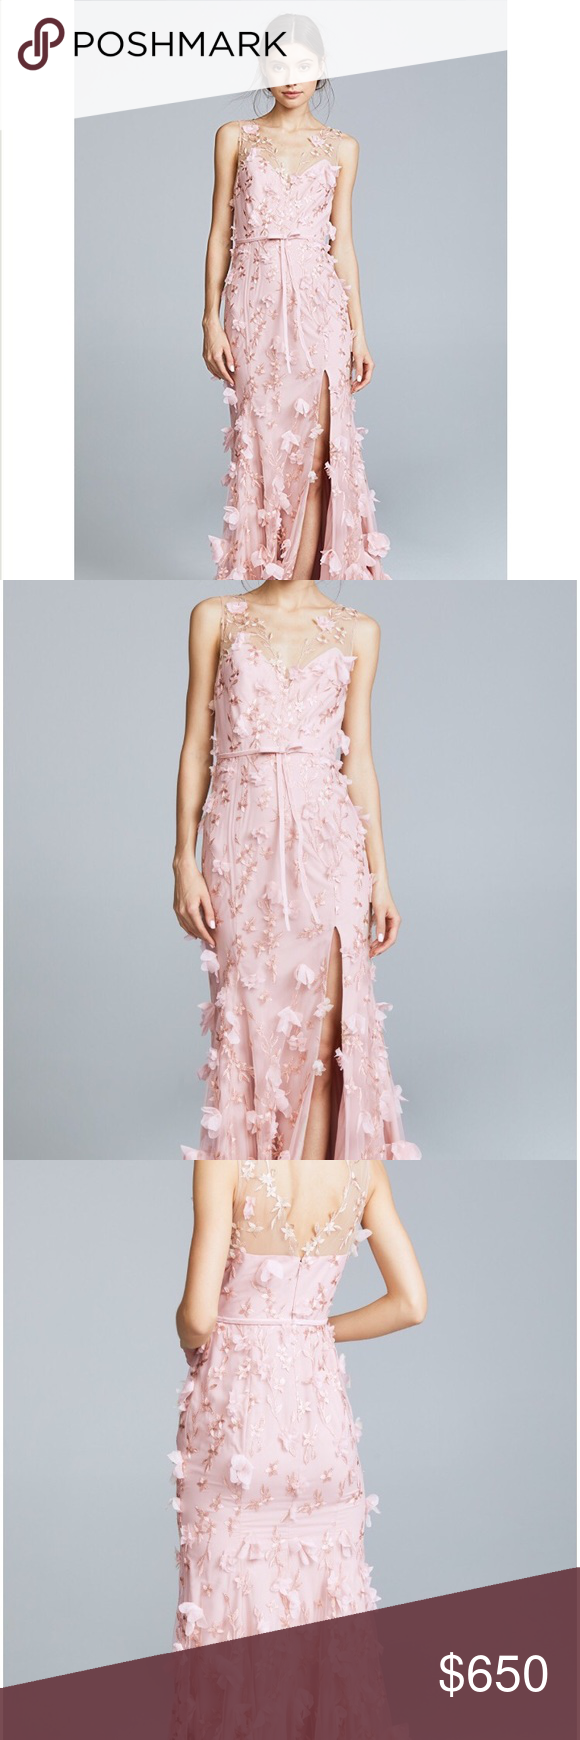 235a0f74 Marchesa Notte Blush Dress Size 0. Wore once at my wedding reception. In  great condition. Marchesa Dresses Maxi